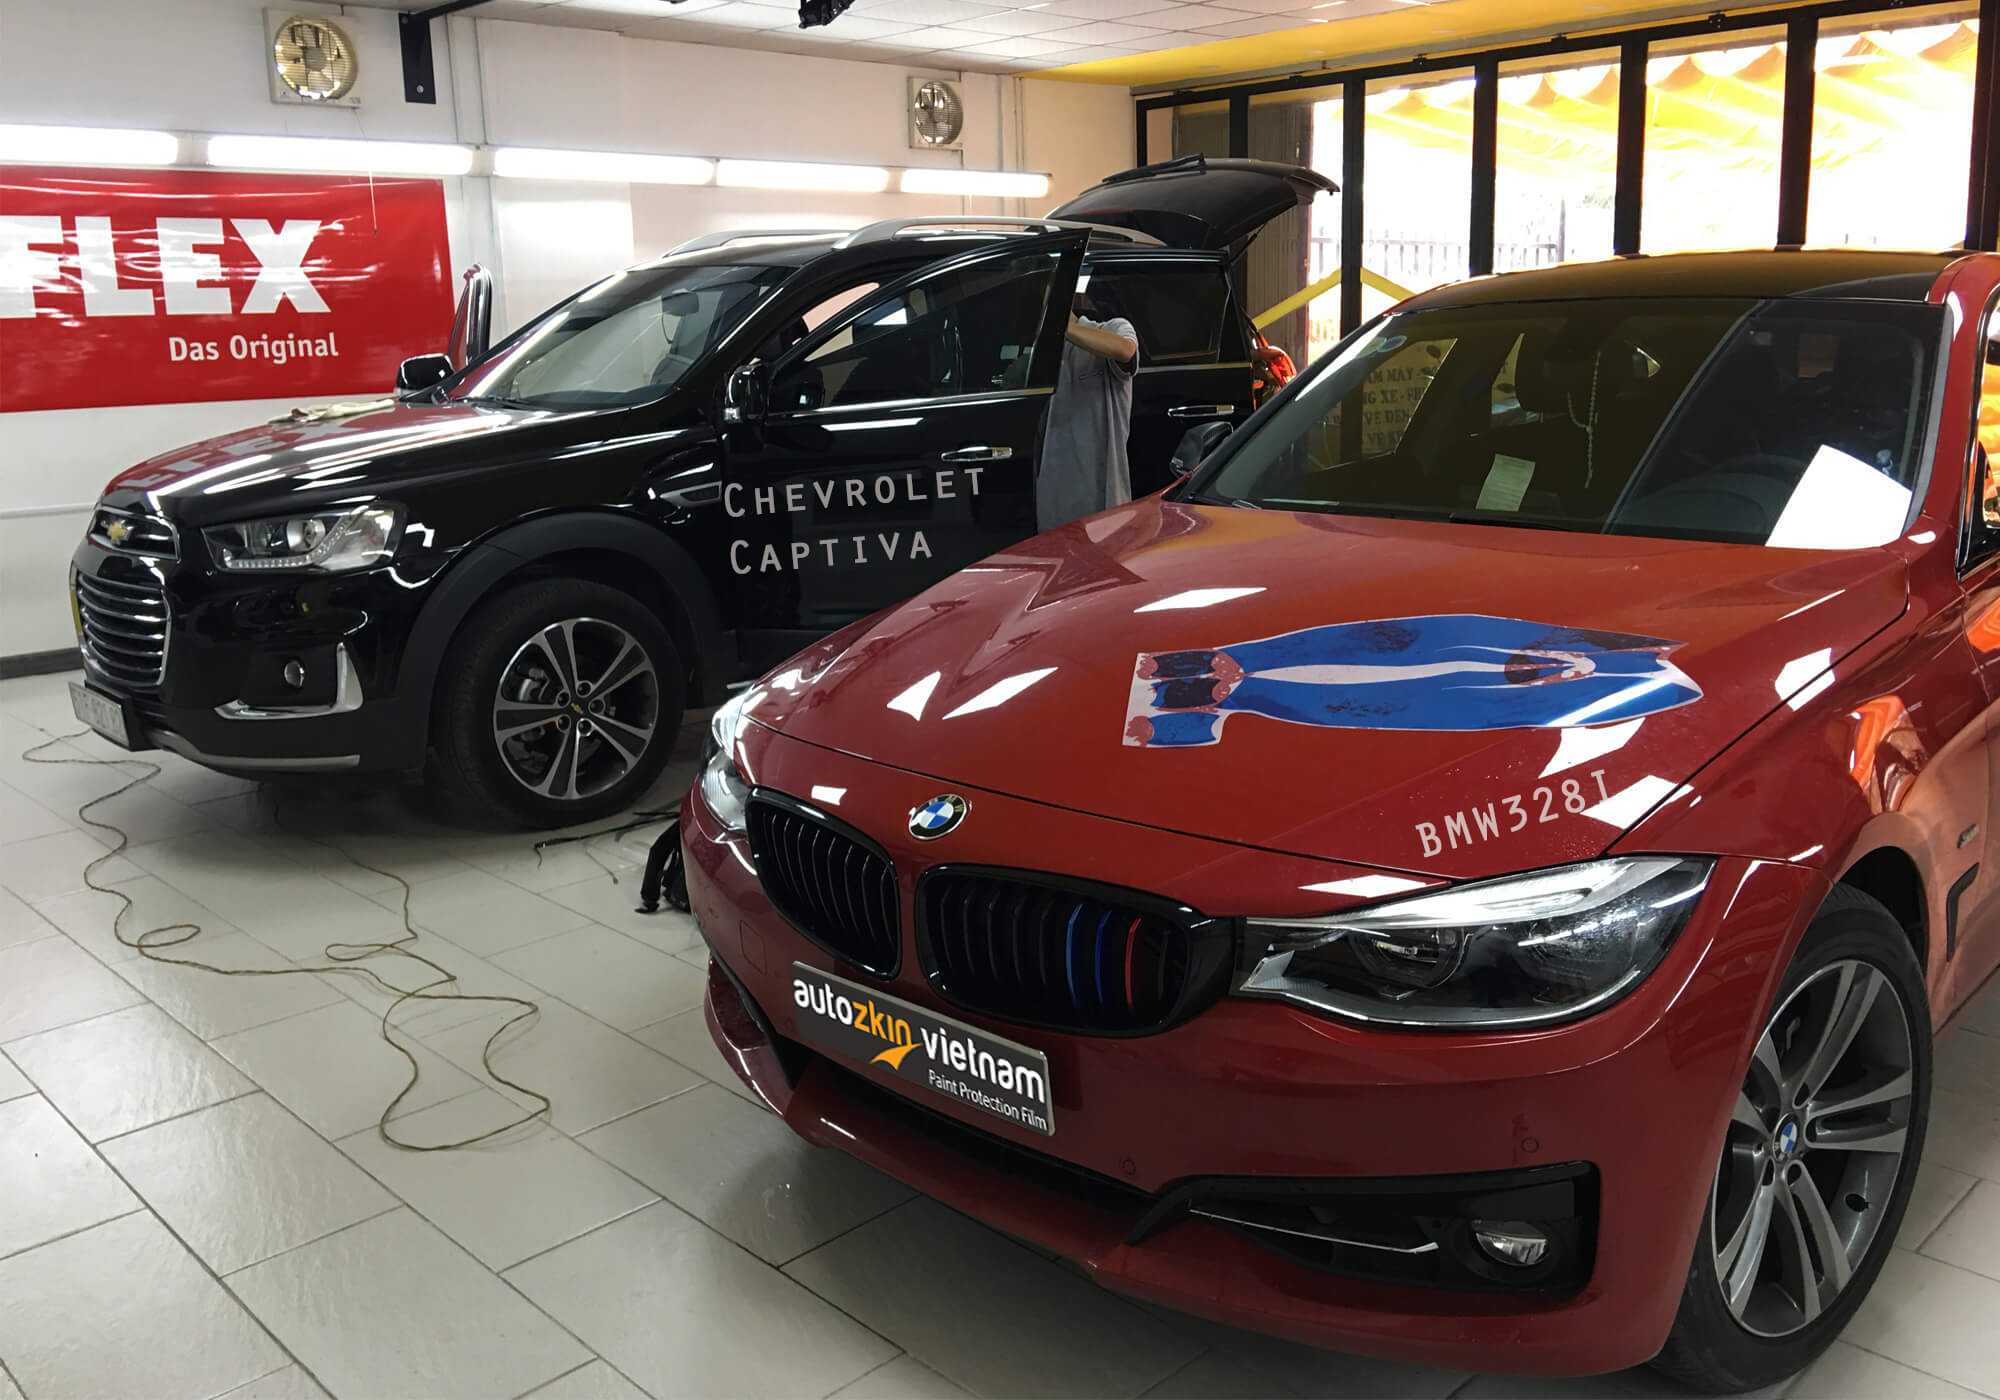 BMW 328i & Chevrolet Captiva